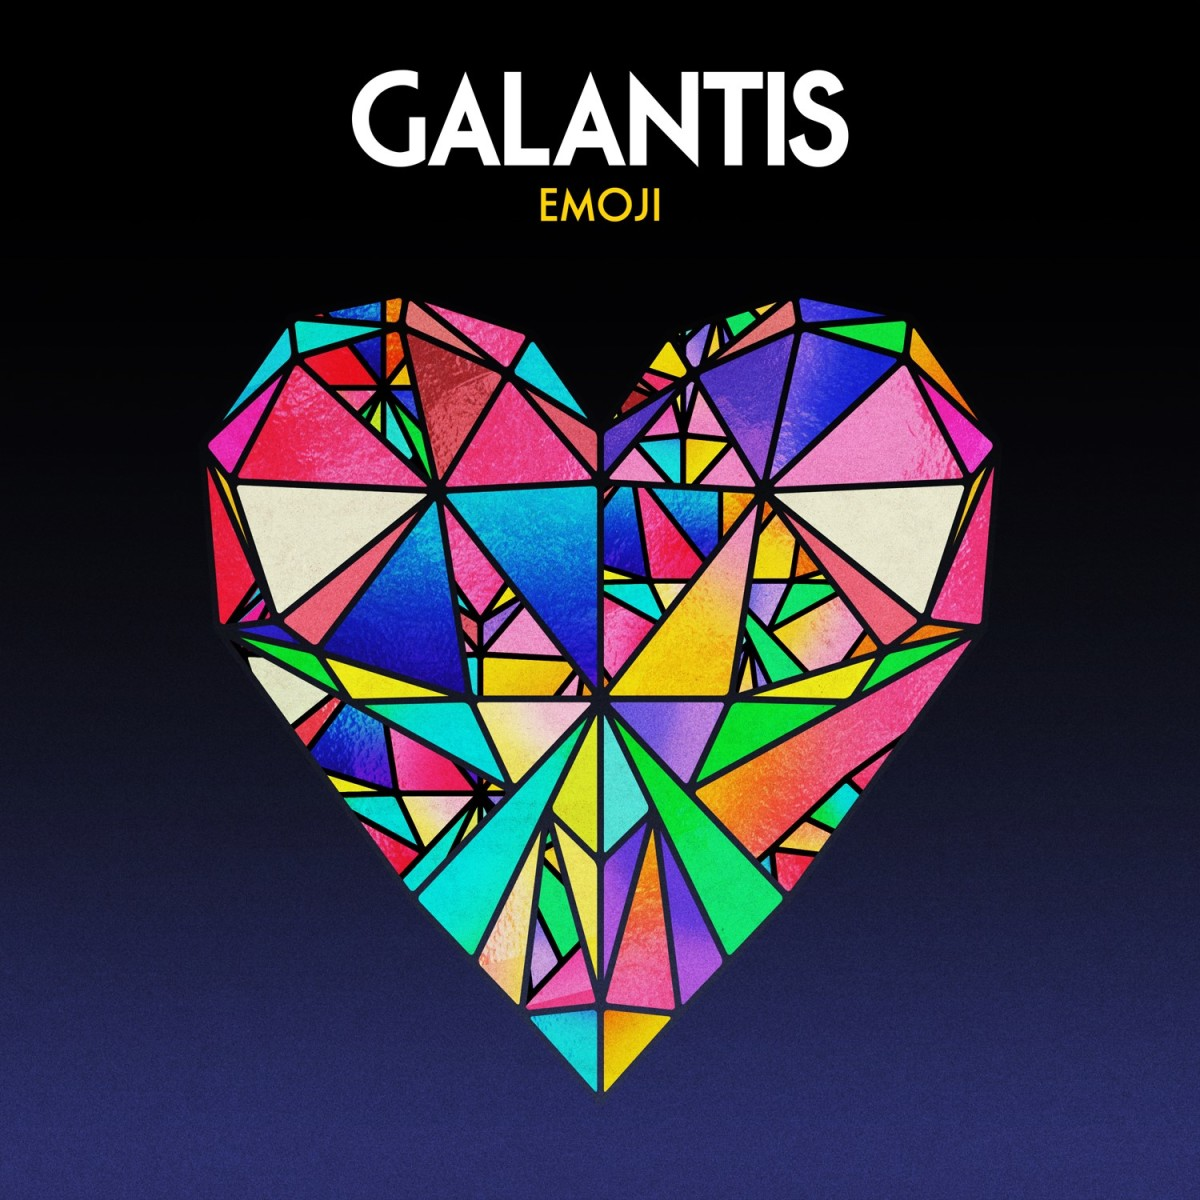 Galantis Emoji Cover Art